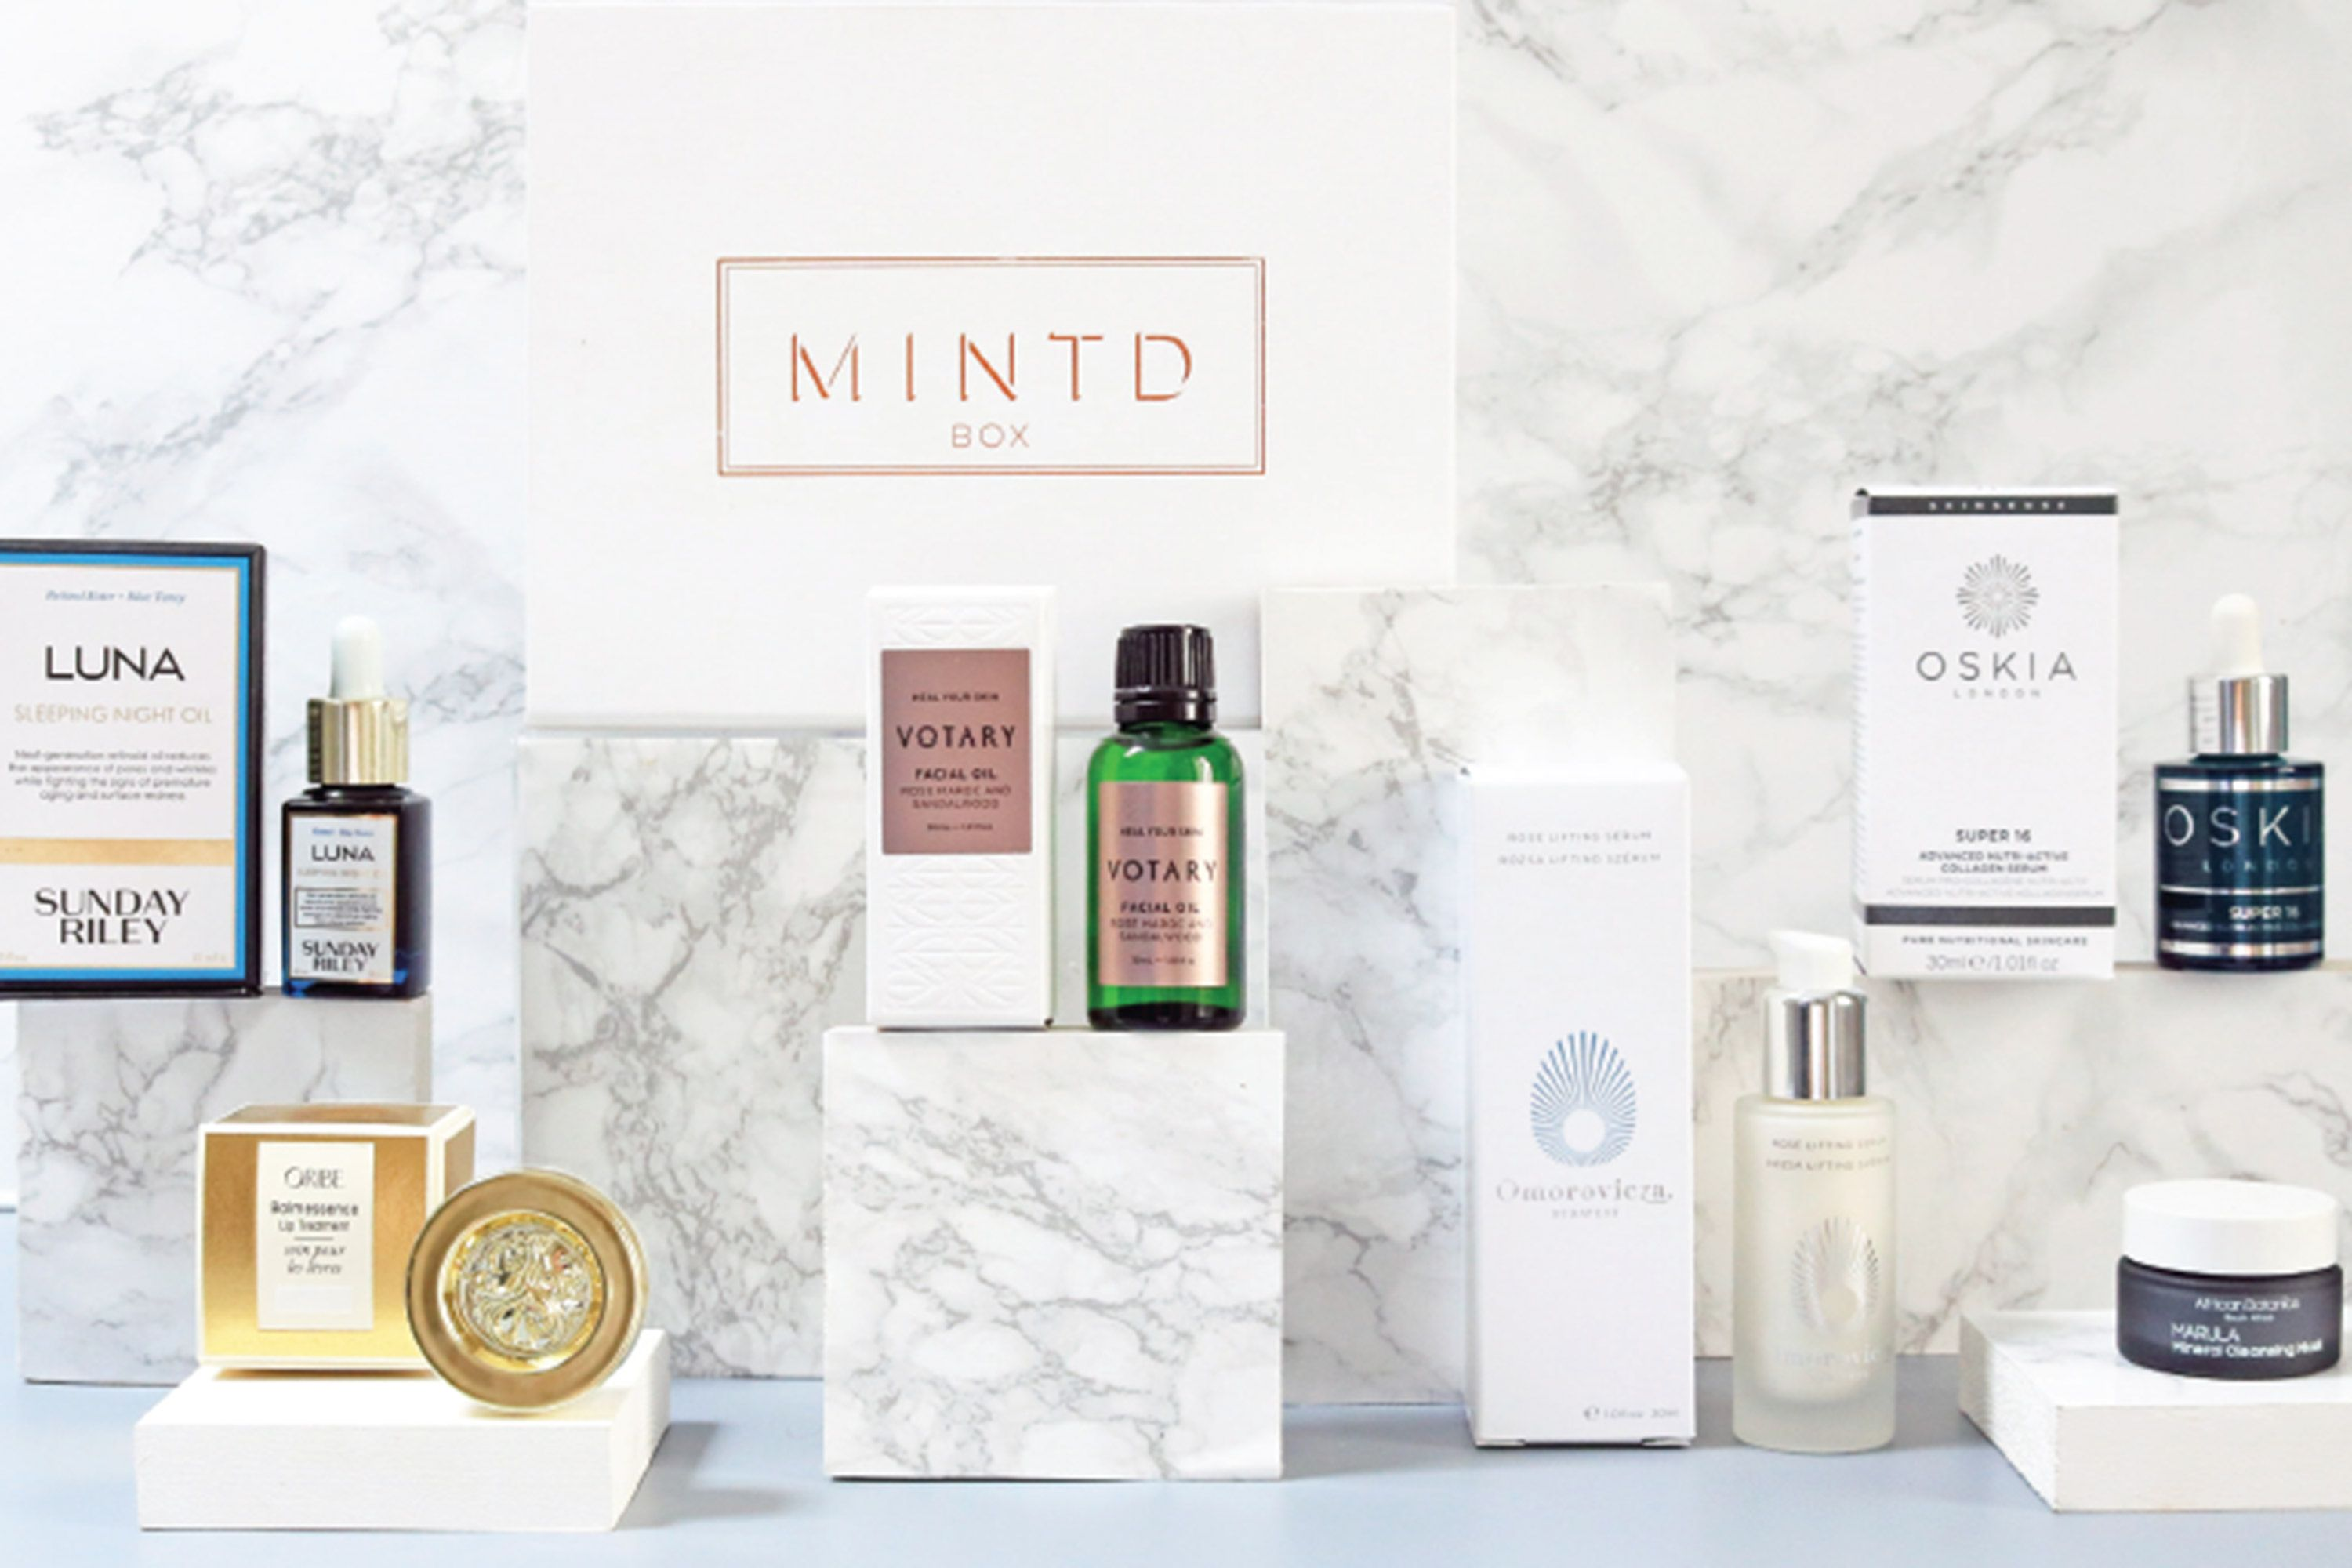 Mintd subscription box